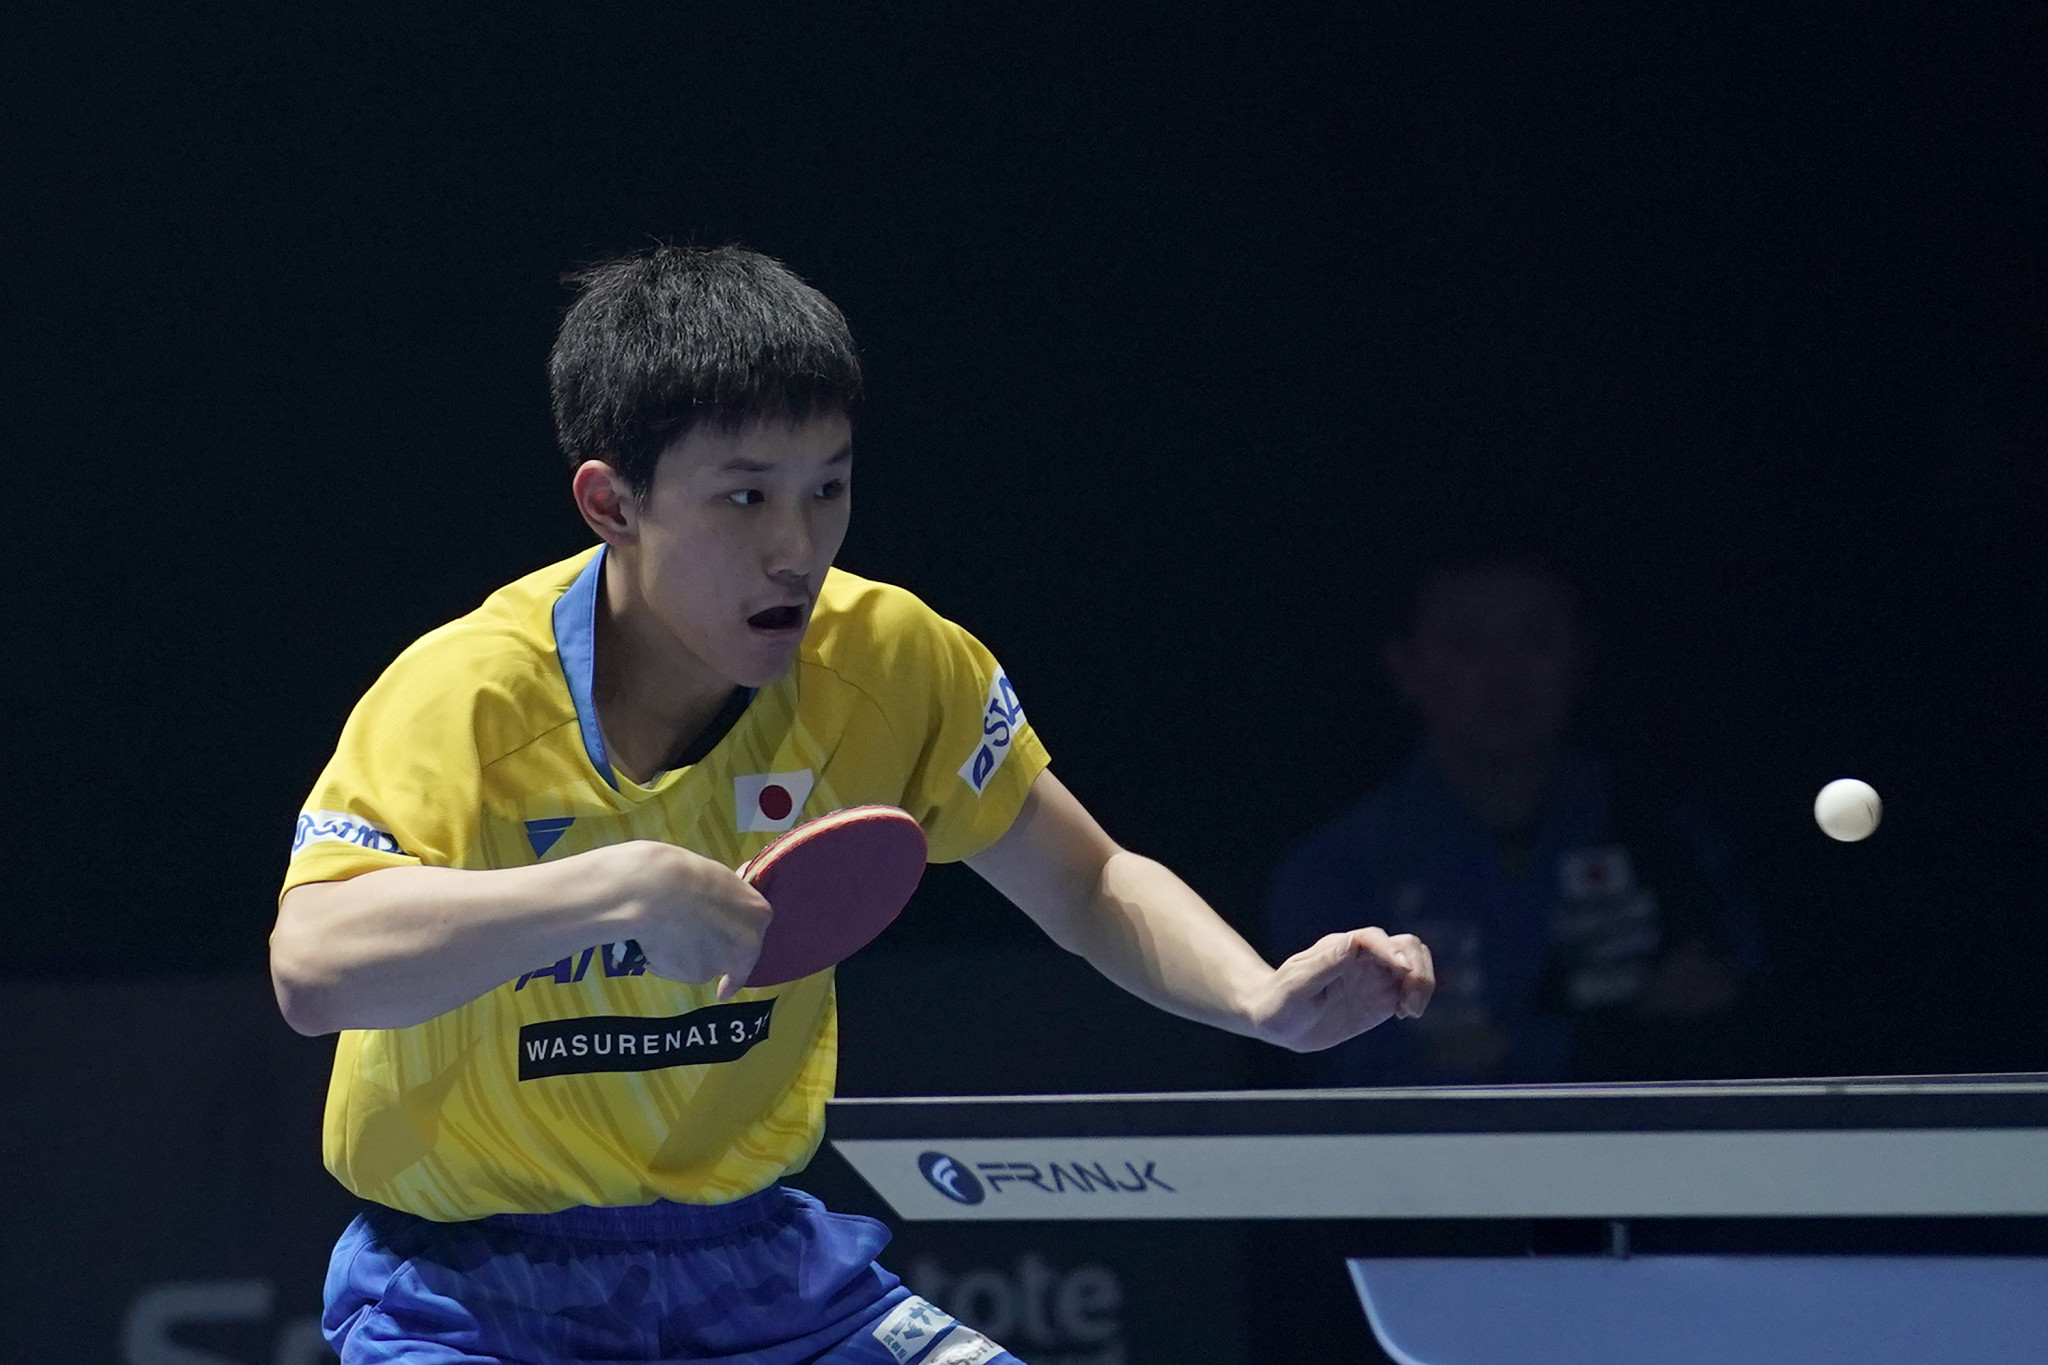 Tomokazu Harimoto played in his first competition since the suspension of sport ©Getty Images